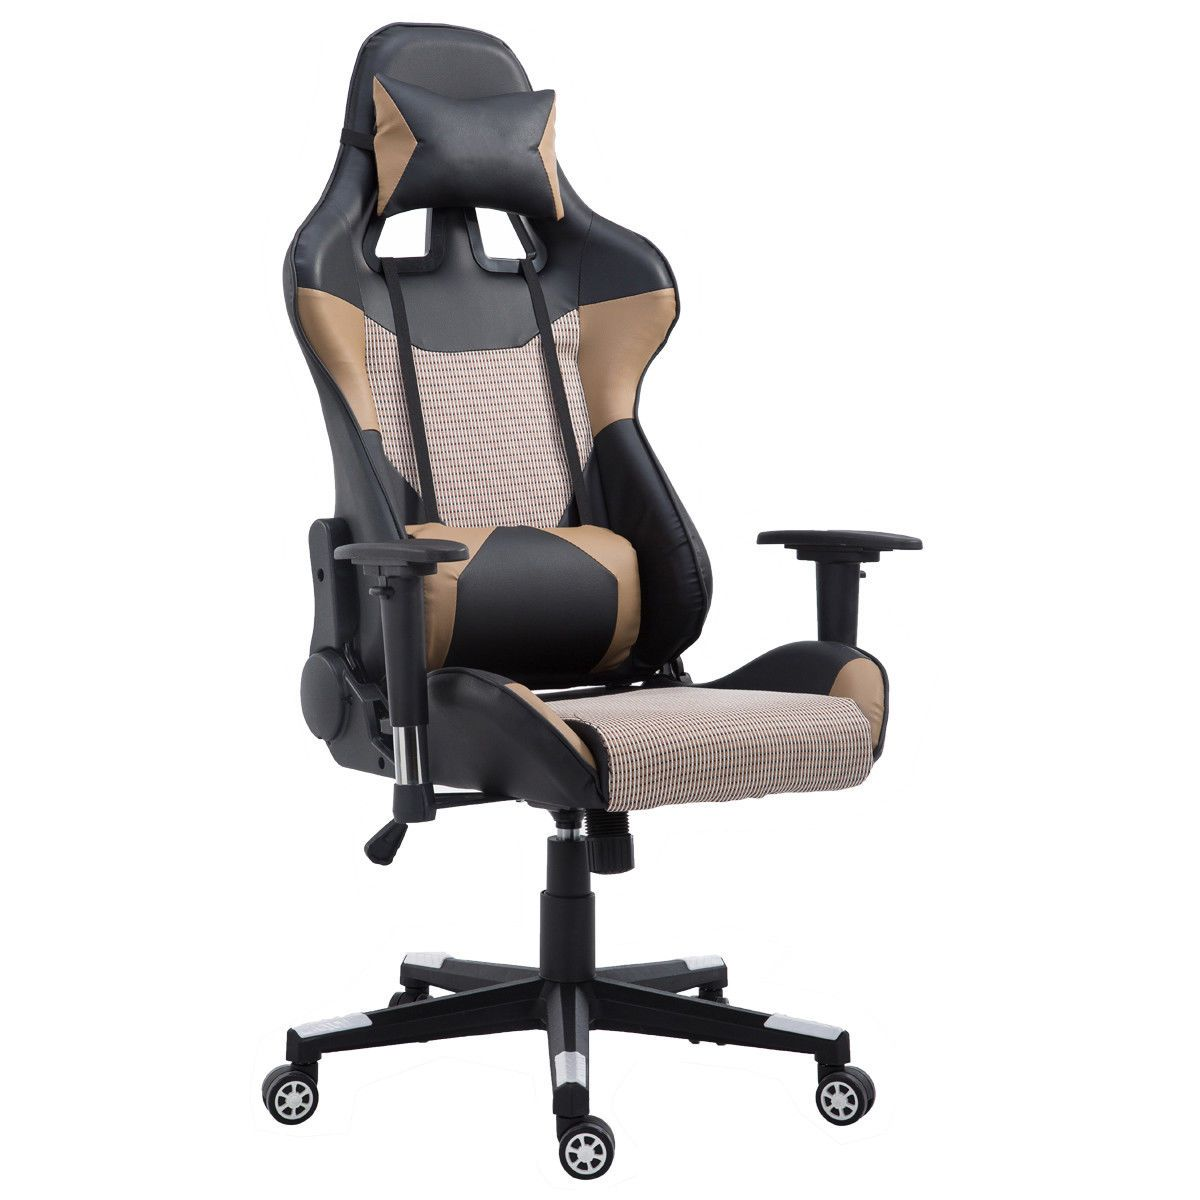 Brown high back gaming racing chair w lumbar support